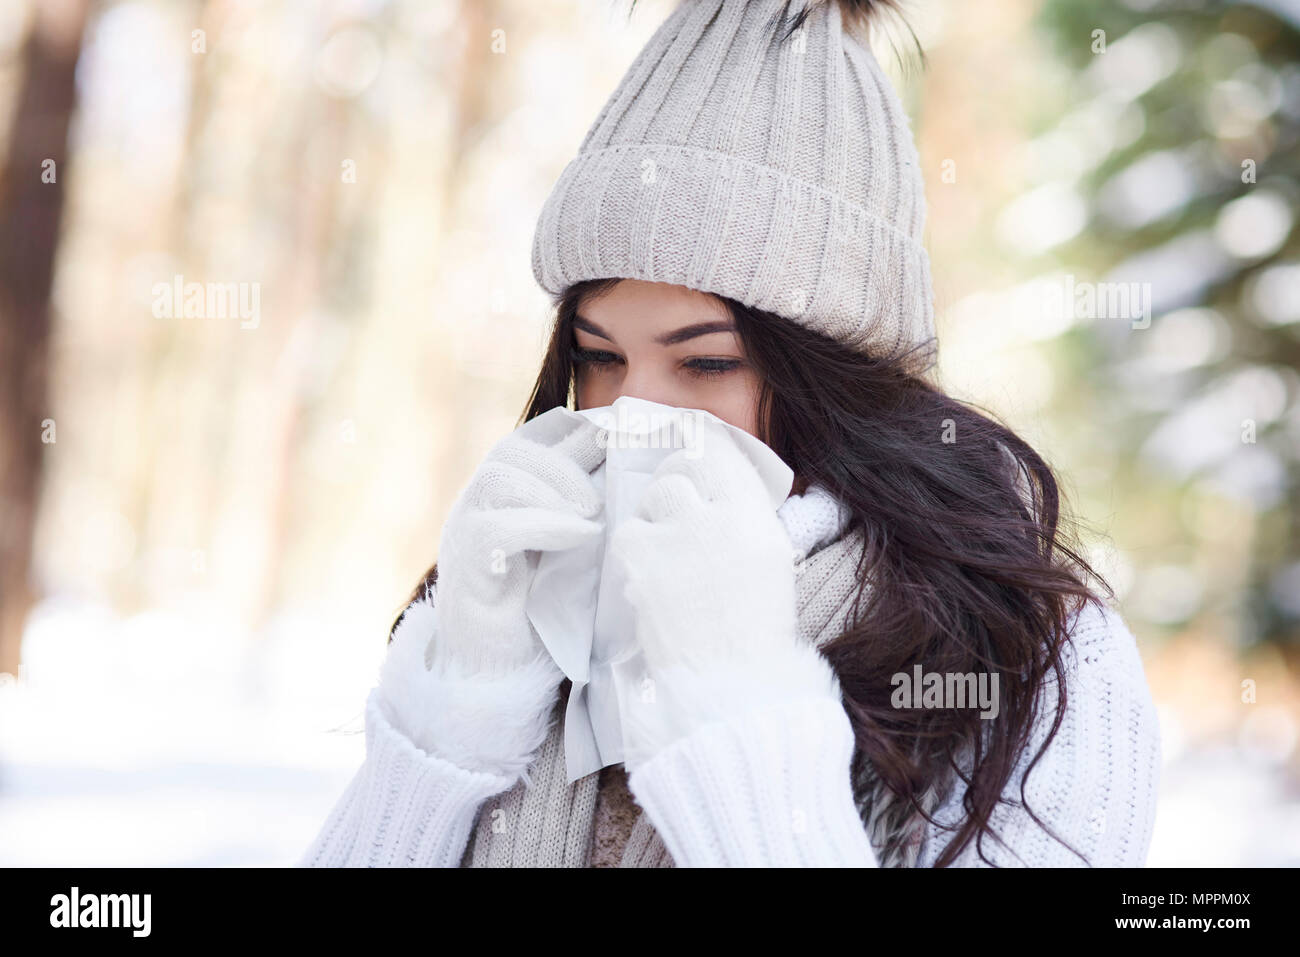 Young woman blowing nose in winter - Stock Image